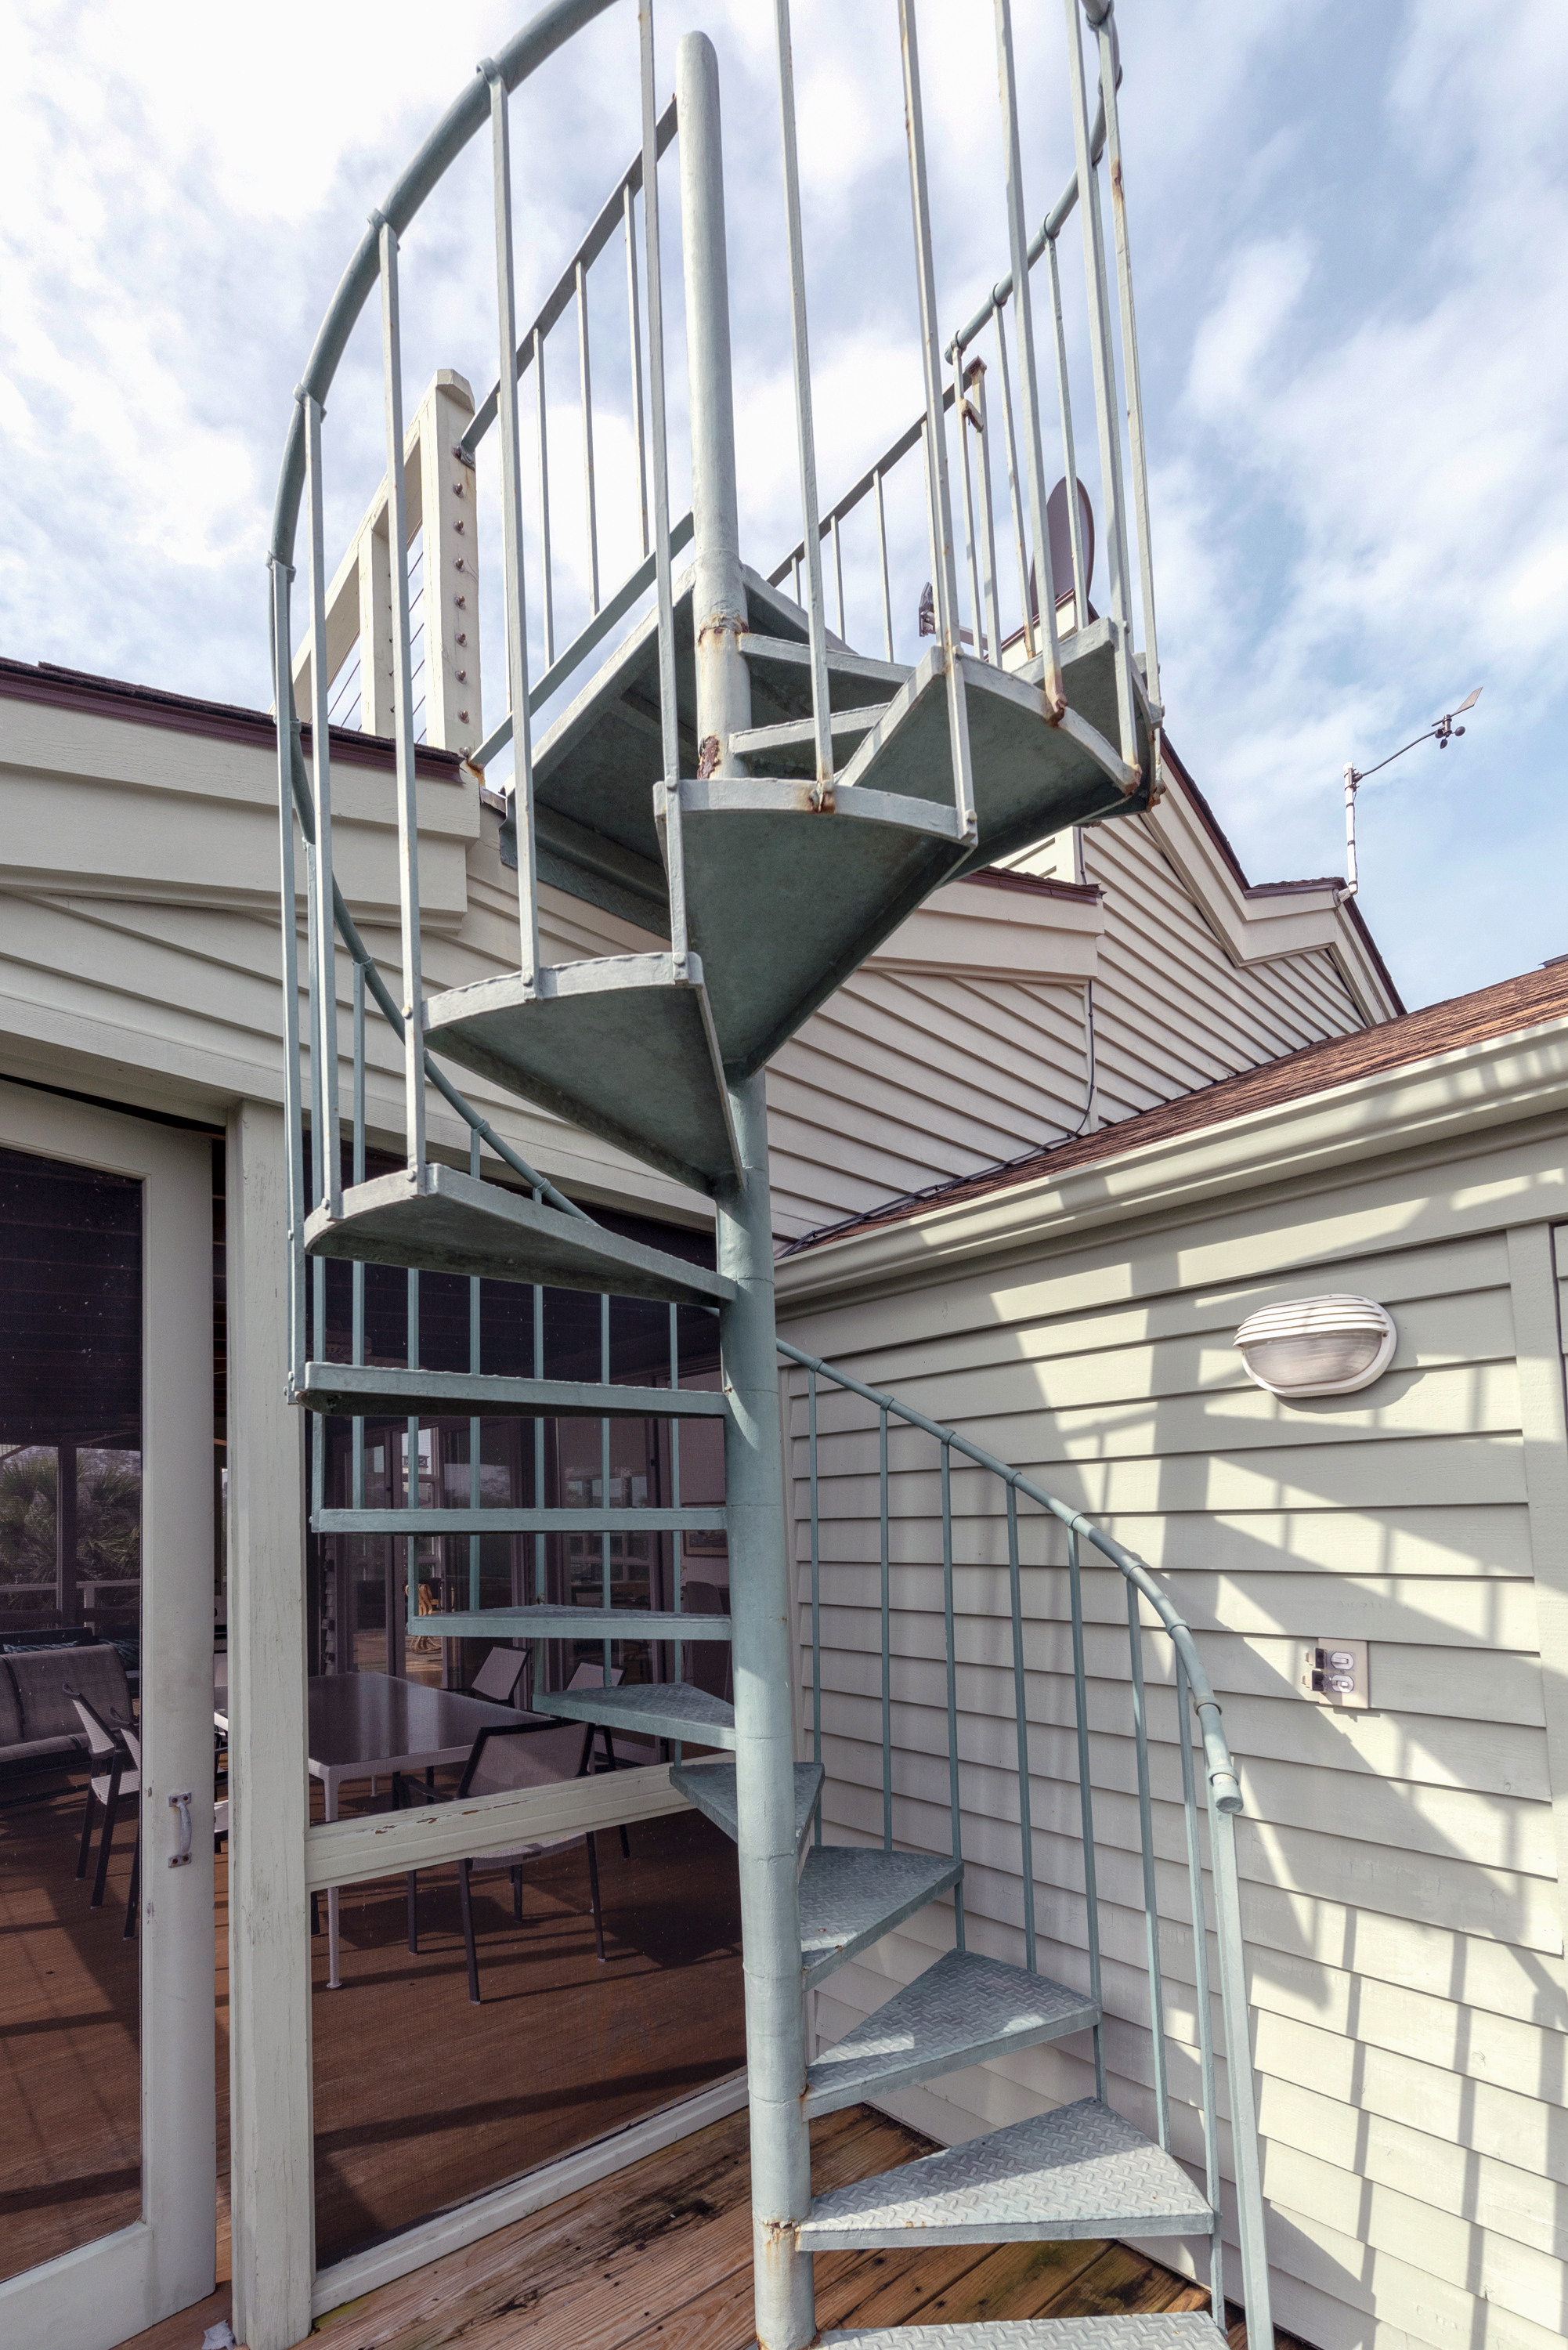 Spiral stair outside of screened porch to roof deck